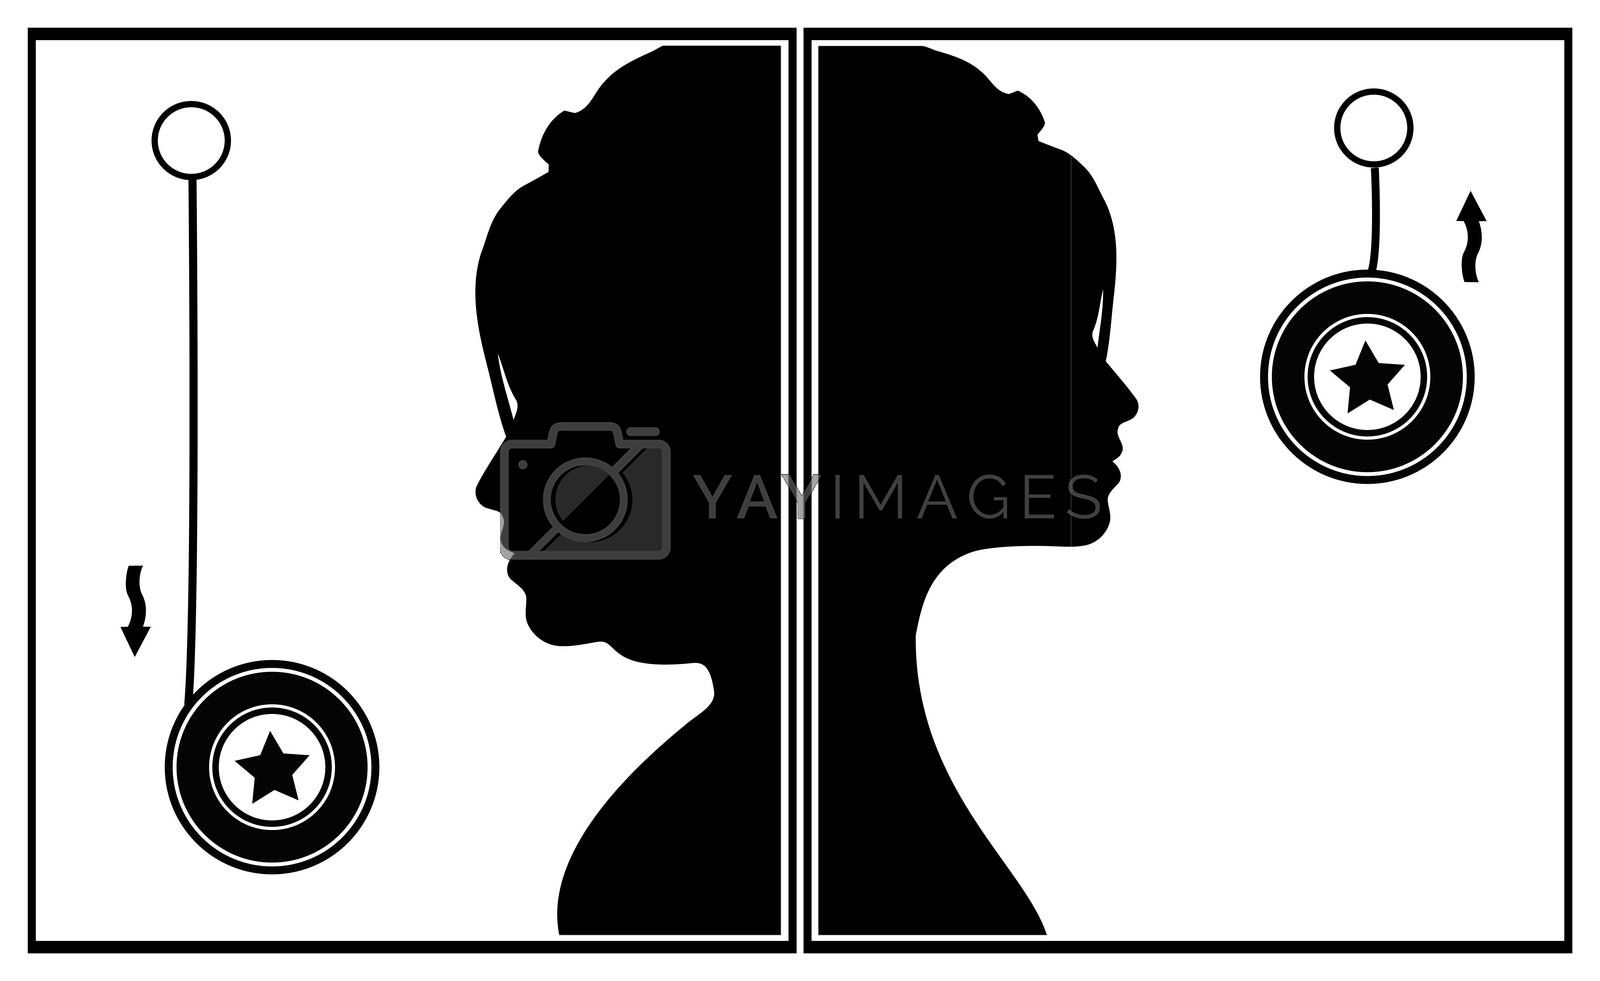 Concept sign of a woman suffering the weight cycle by losing and regaining weight